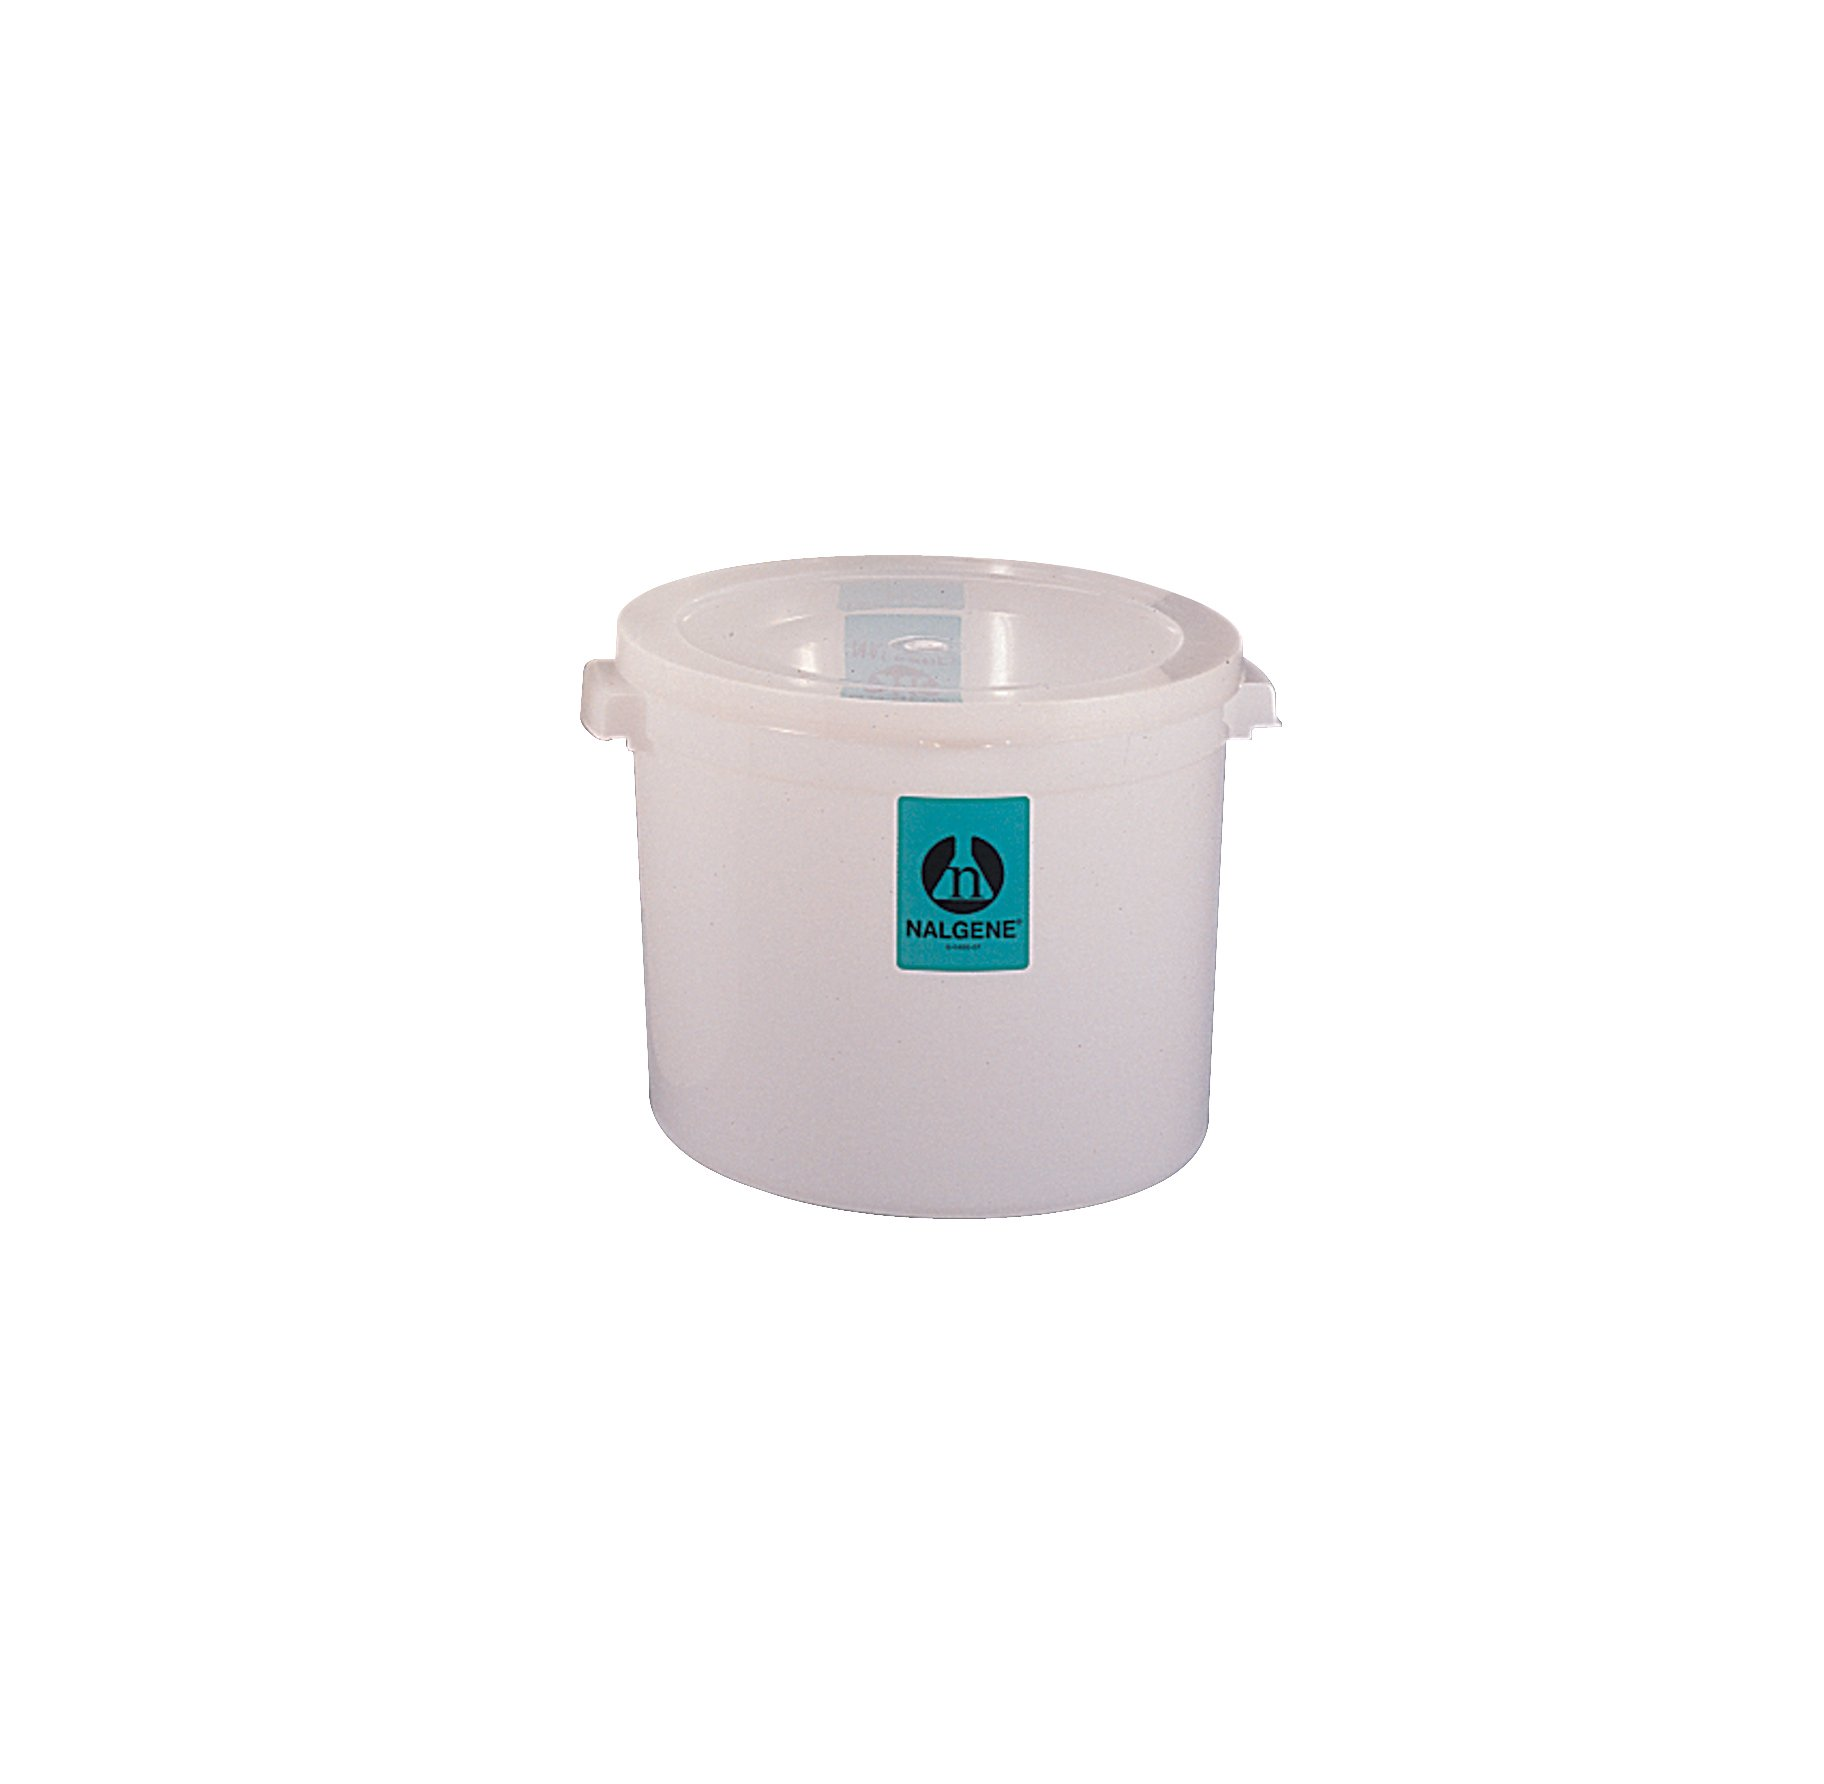 Nalgene High-Density Polyethylene Large Round Jar with Cover, 15L Capacity, 305mm O.D. x 240mm H (Case of 6)